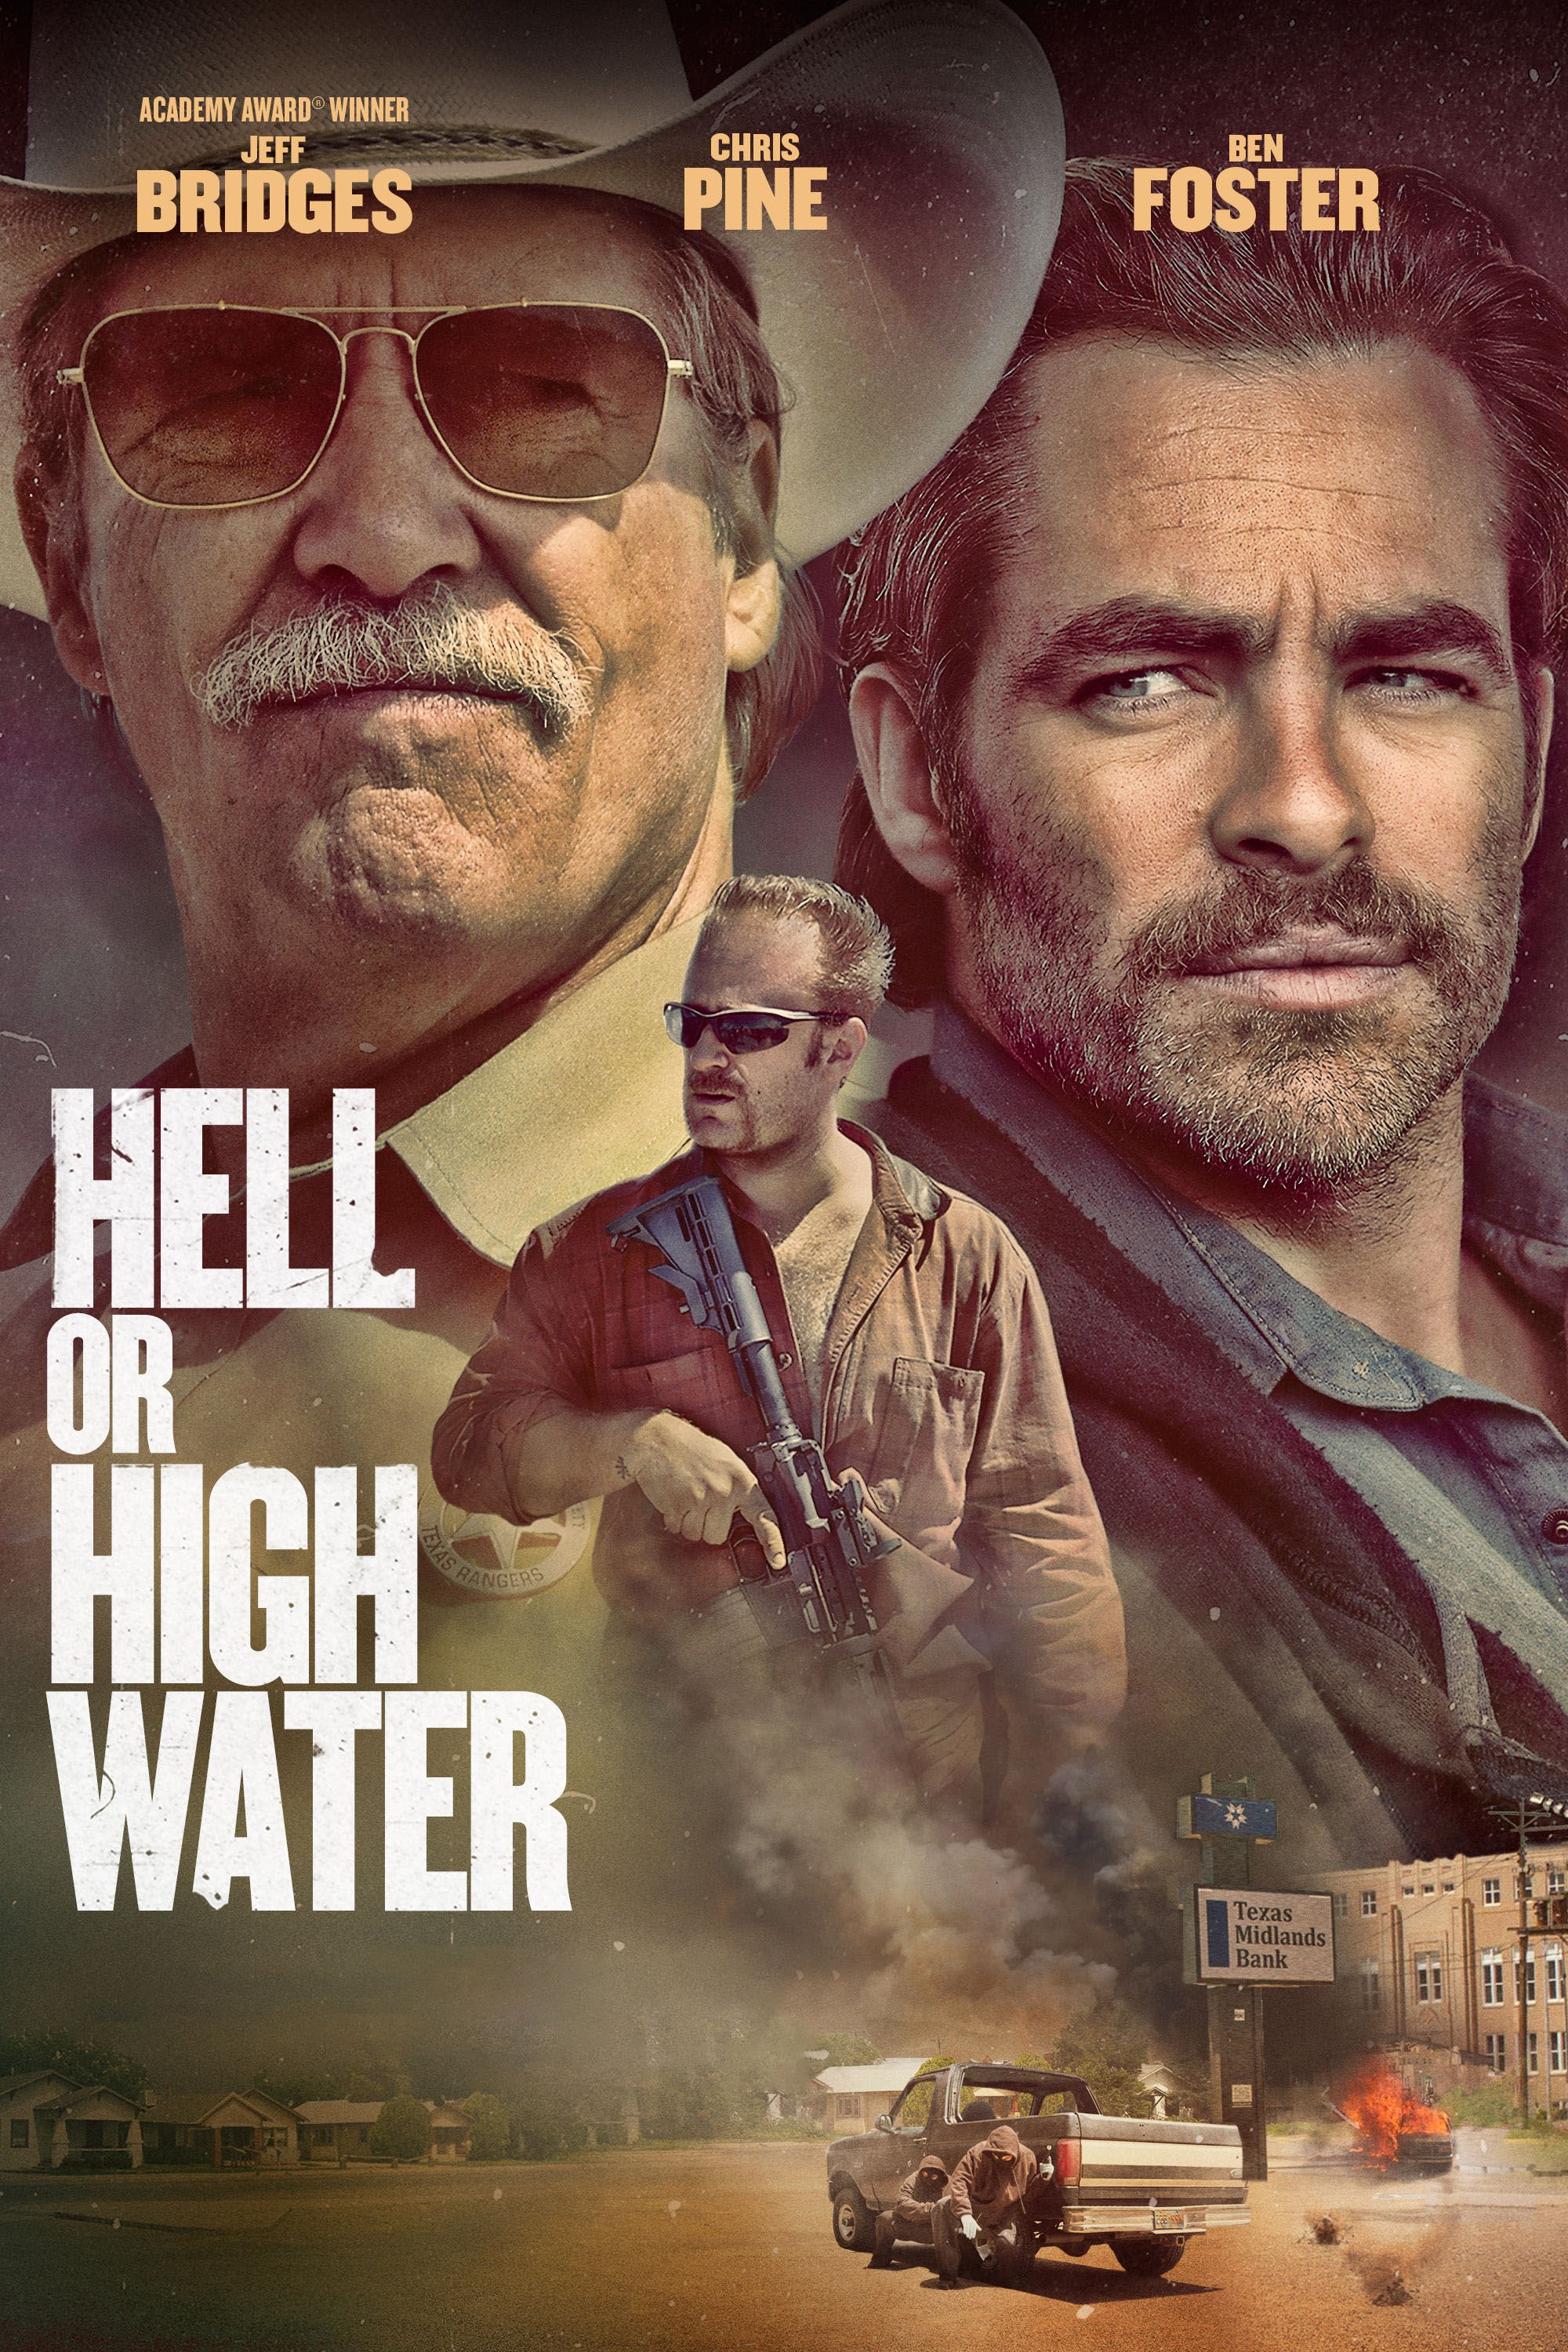 hell-or-high-water-filming-locations-poster